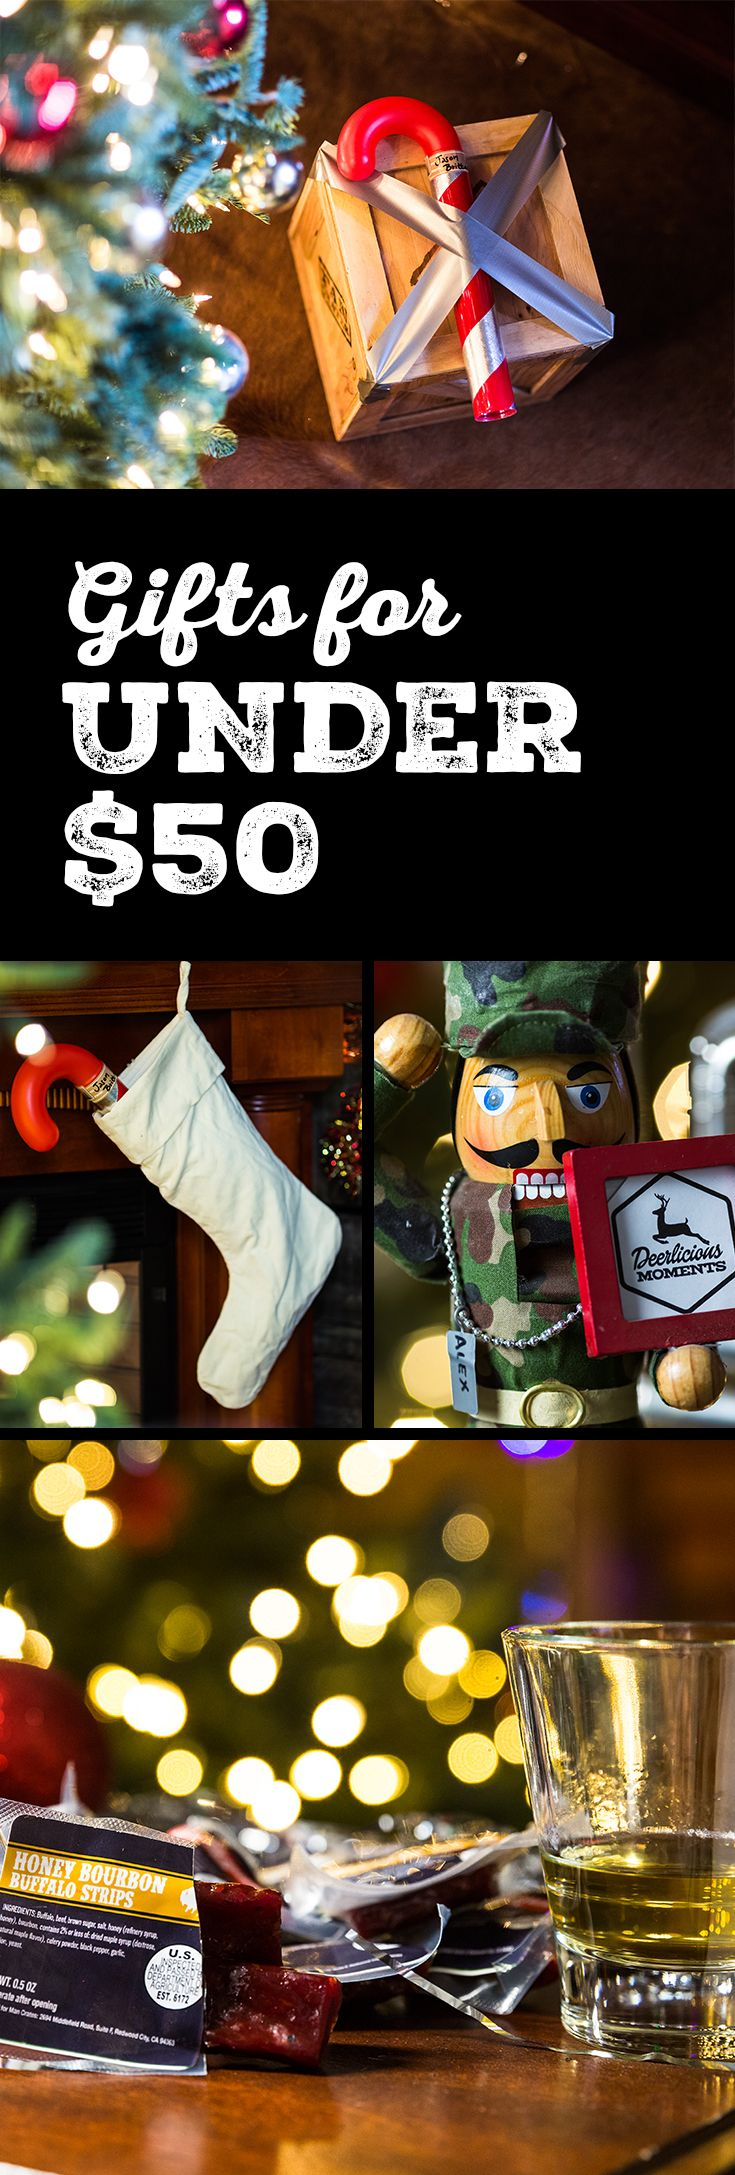 The most awesome gifts for men in the world start at less than the price of an oil change. Check out Man Crates awesome gifts under $50.